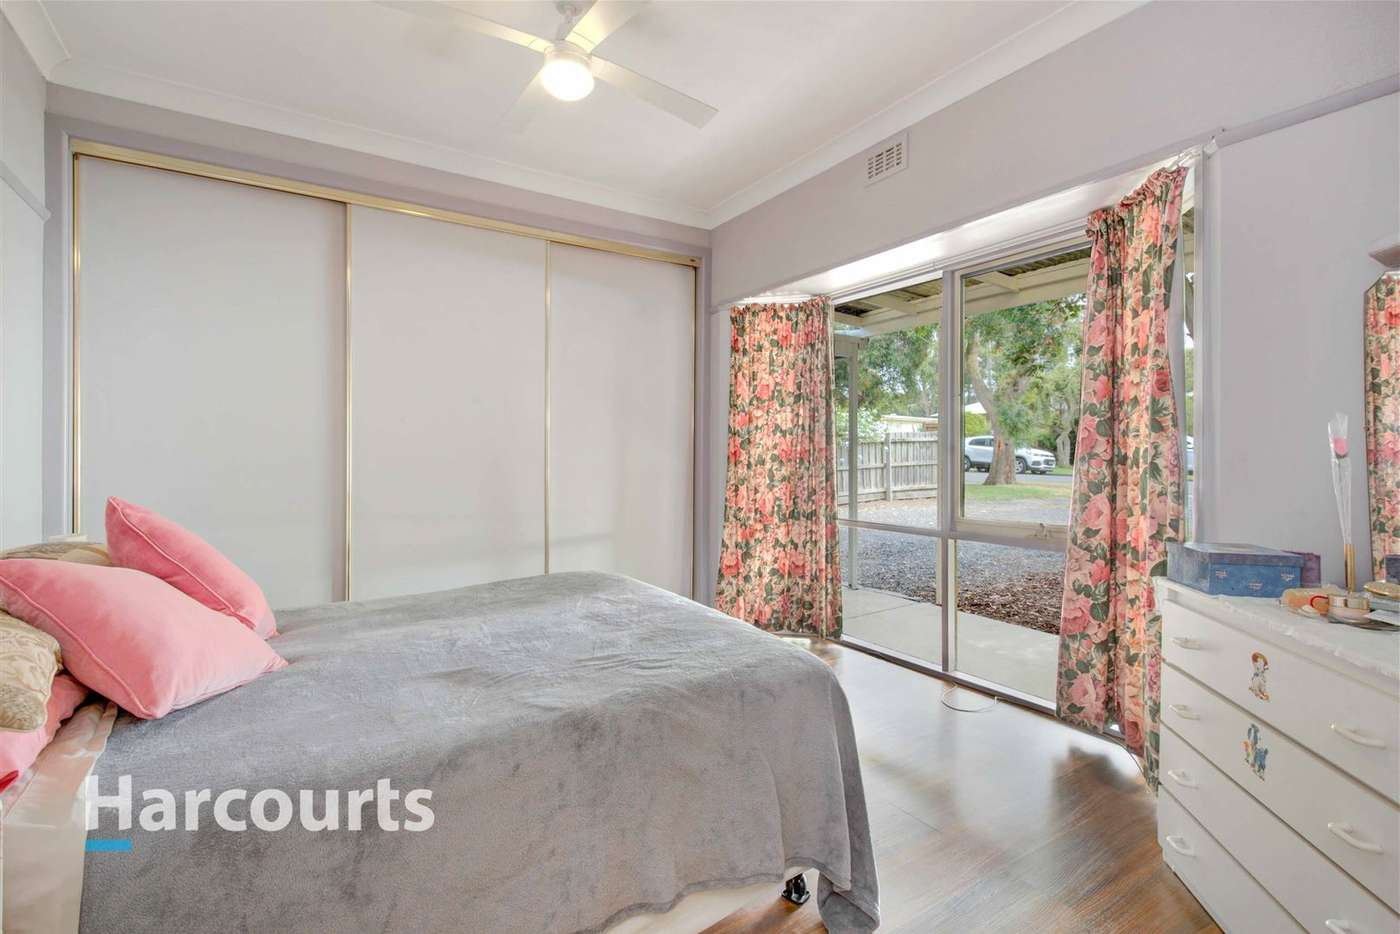 Sixth view of Homely house listing, 21 Park Road, Crib Point VIC 3919